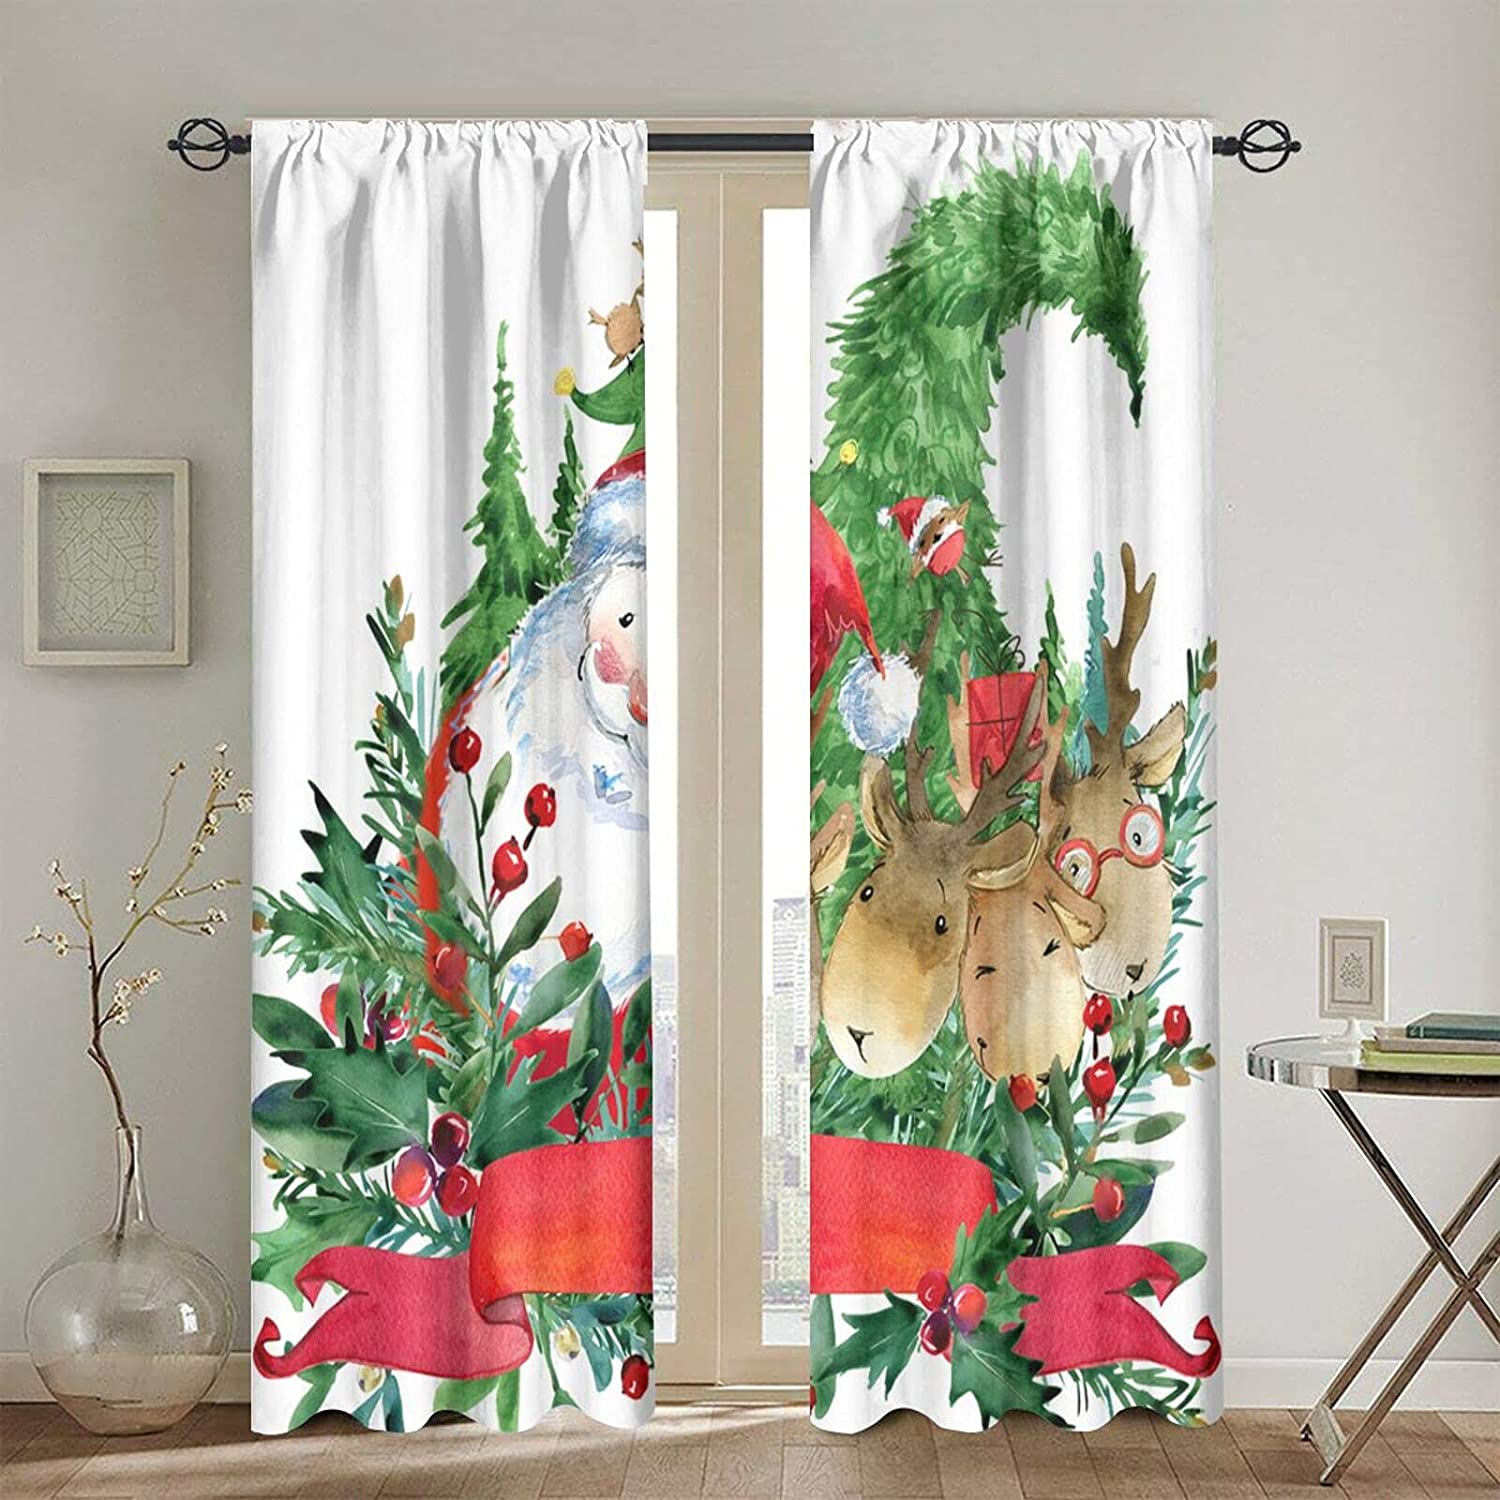 Blackout Curtains for Girls sold Challenge the lowest price of Japan out Boys Santa Reinde Claus Cartoon Cute